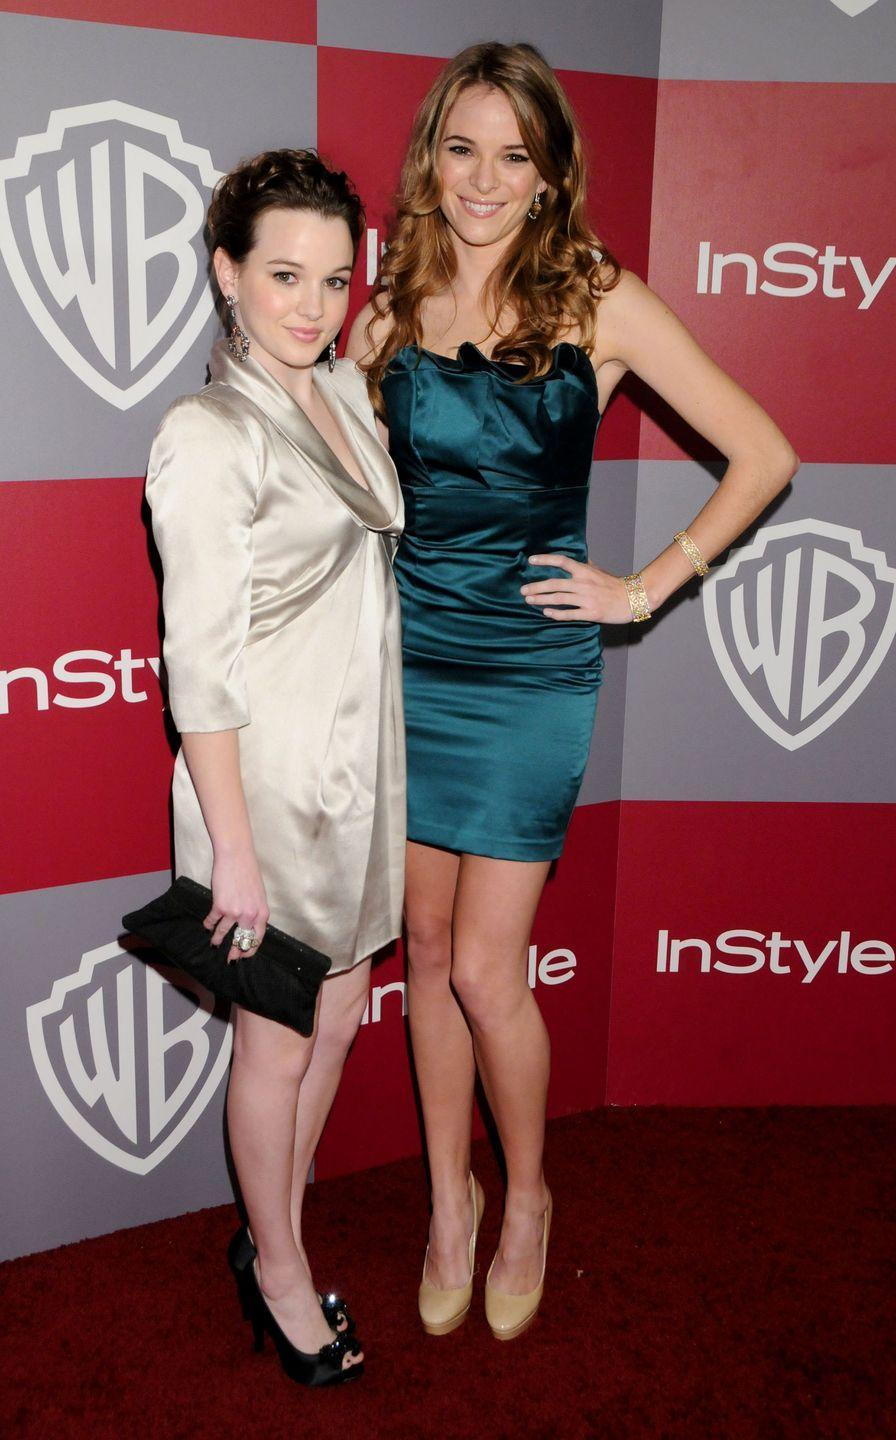 """<p>Both Danielle and Kay Panabaker found fame on Disney in the mid-2000s. The two look so much alike that Danielle played the role of Kay's alter ego in <em>Read It and Weep</em>. While Danielle is still acting, <a href=""""https://www.imdb.com/name/nm0659048/bio"""" rel=""""nofollow noopener"""" target=""""_blank"""" data-ylk=""""slk:Kay has retired and is currently working as a zoologist"""" class=""""link rapid-noclick-resp"""">Kay has retired and is currently working as a zoologist</a>. </p>"""